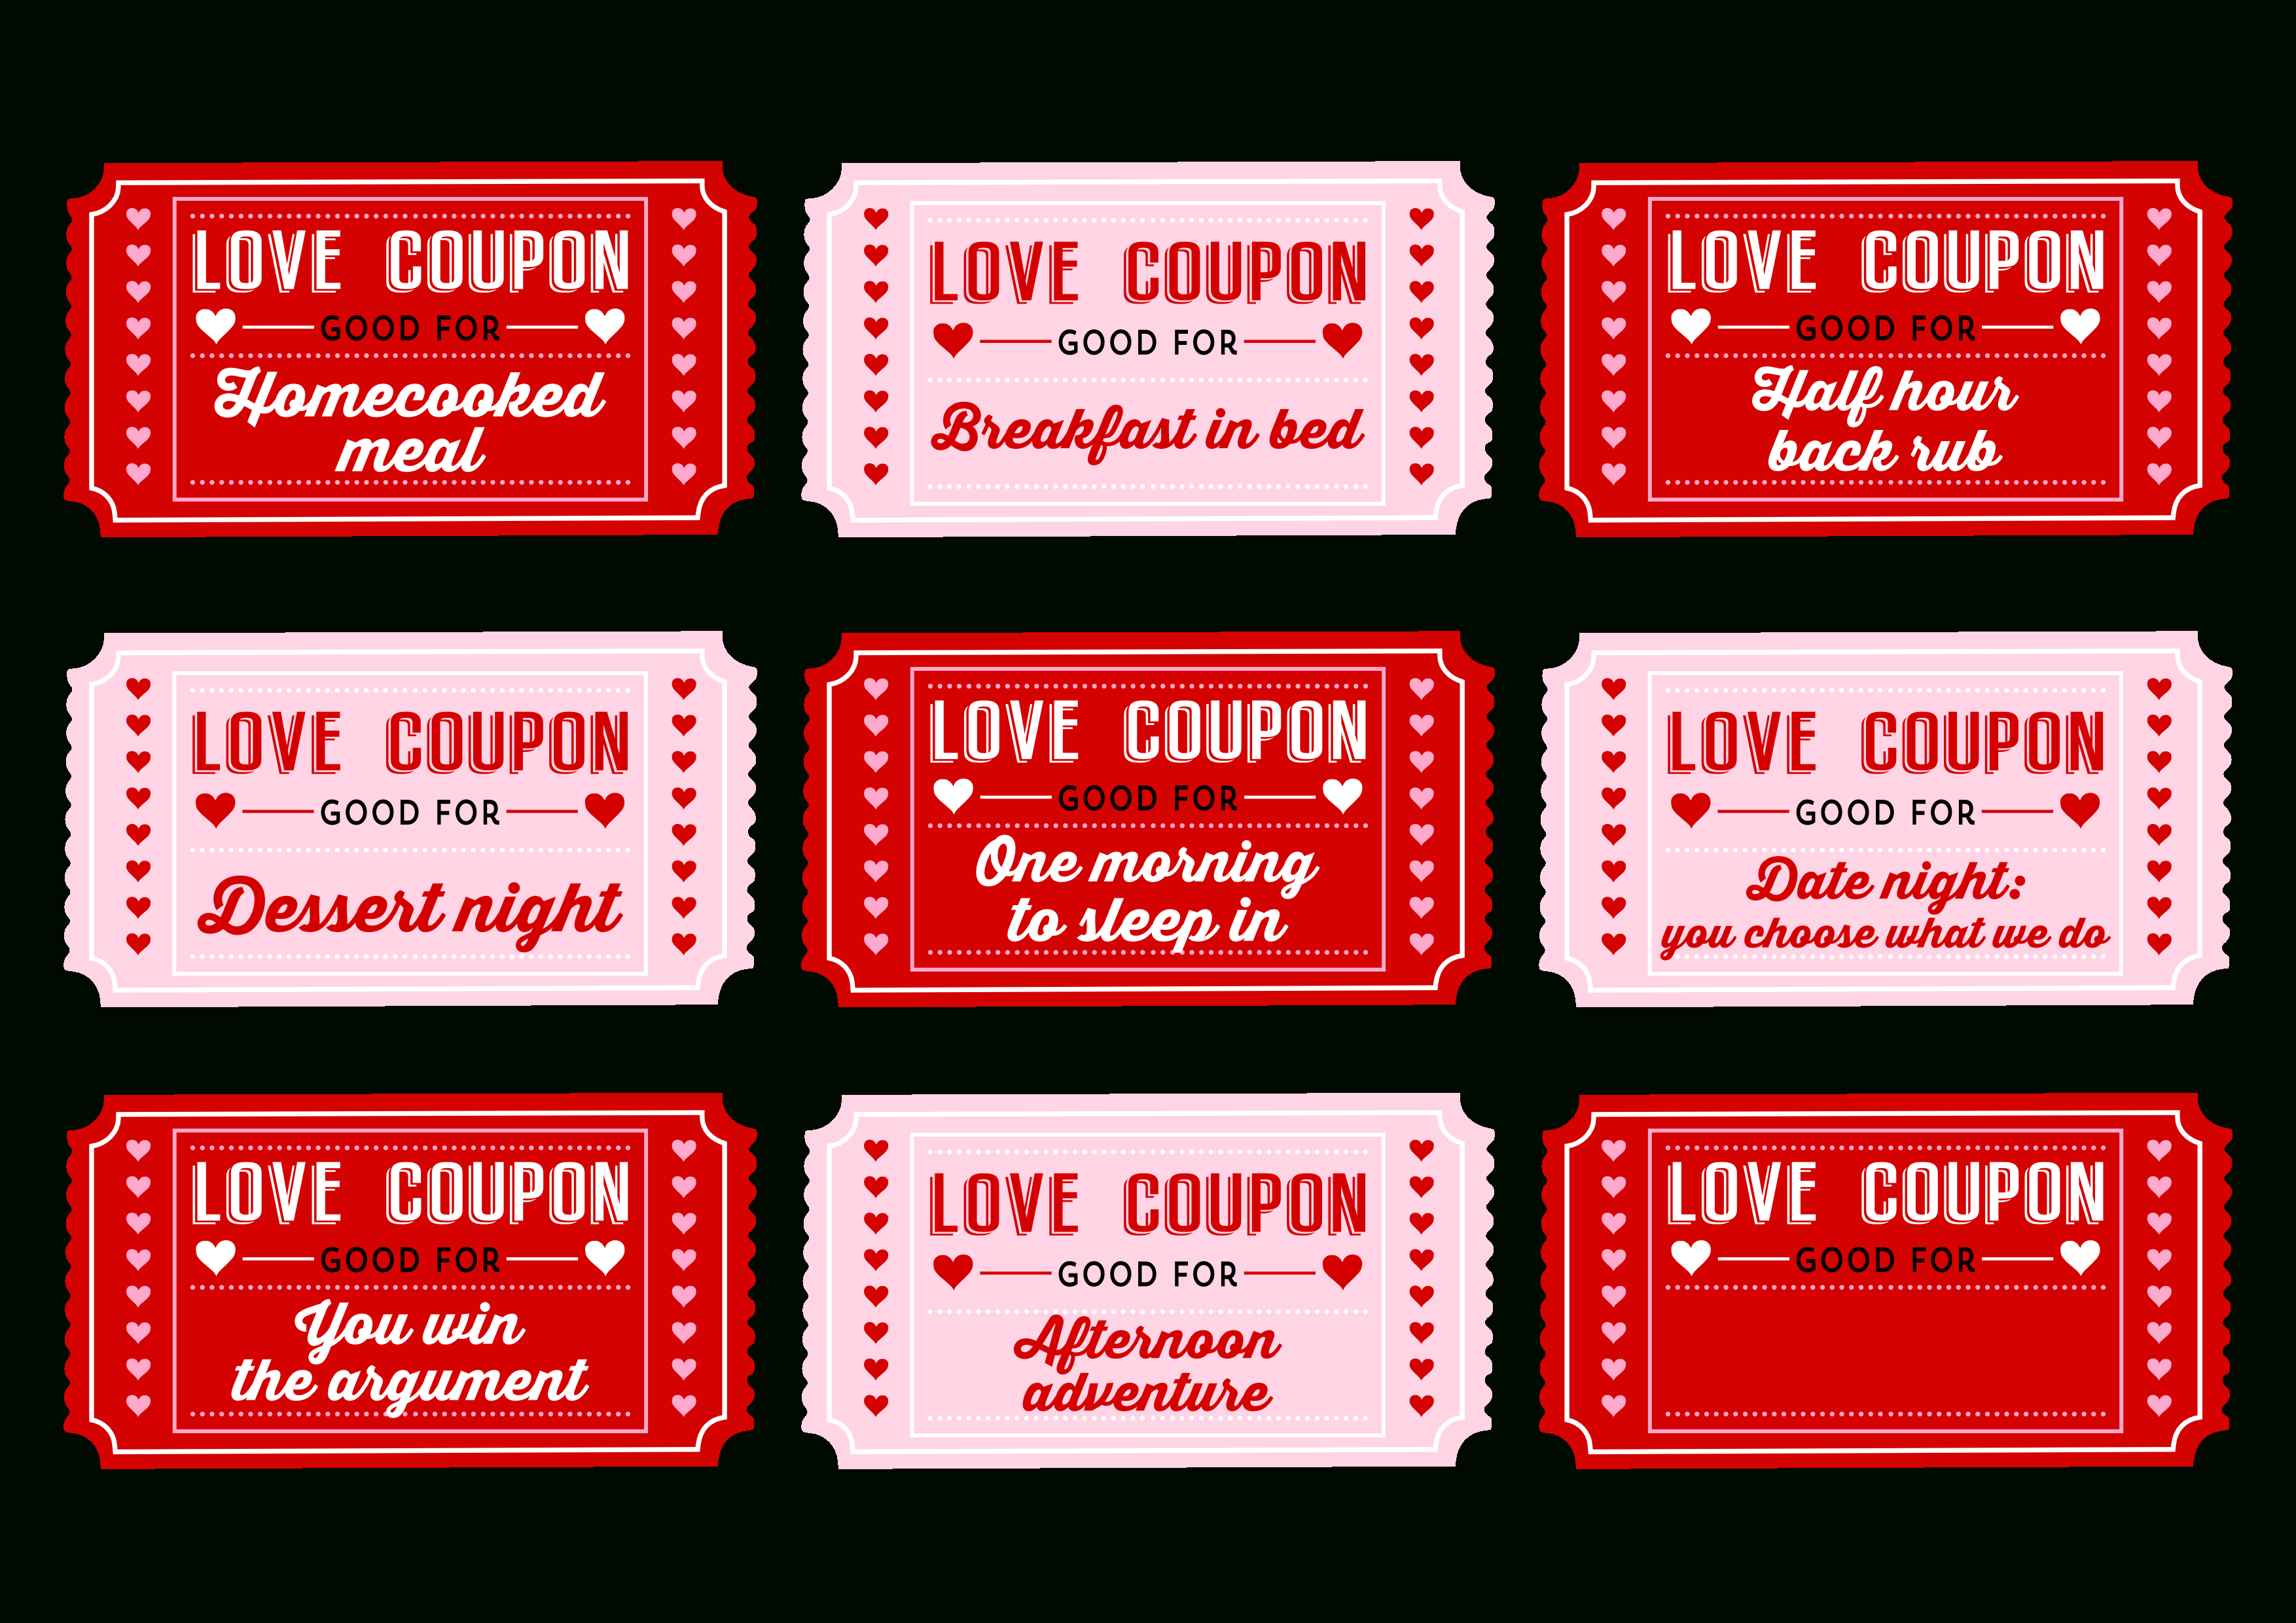 Free Printable Love Coupons For Couples On Valentine's Day! | Decor - Free Printable Coupons For Husband